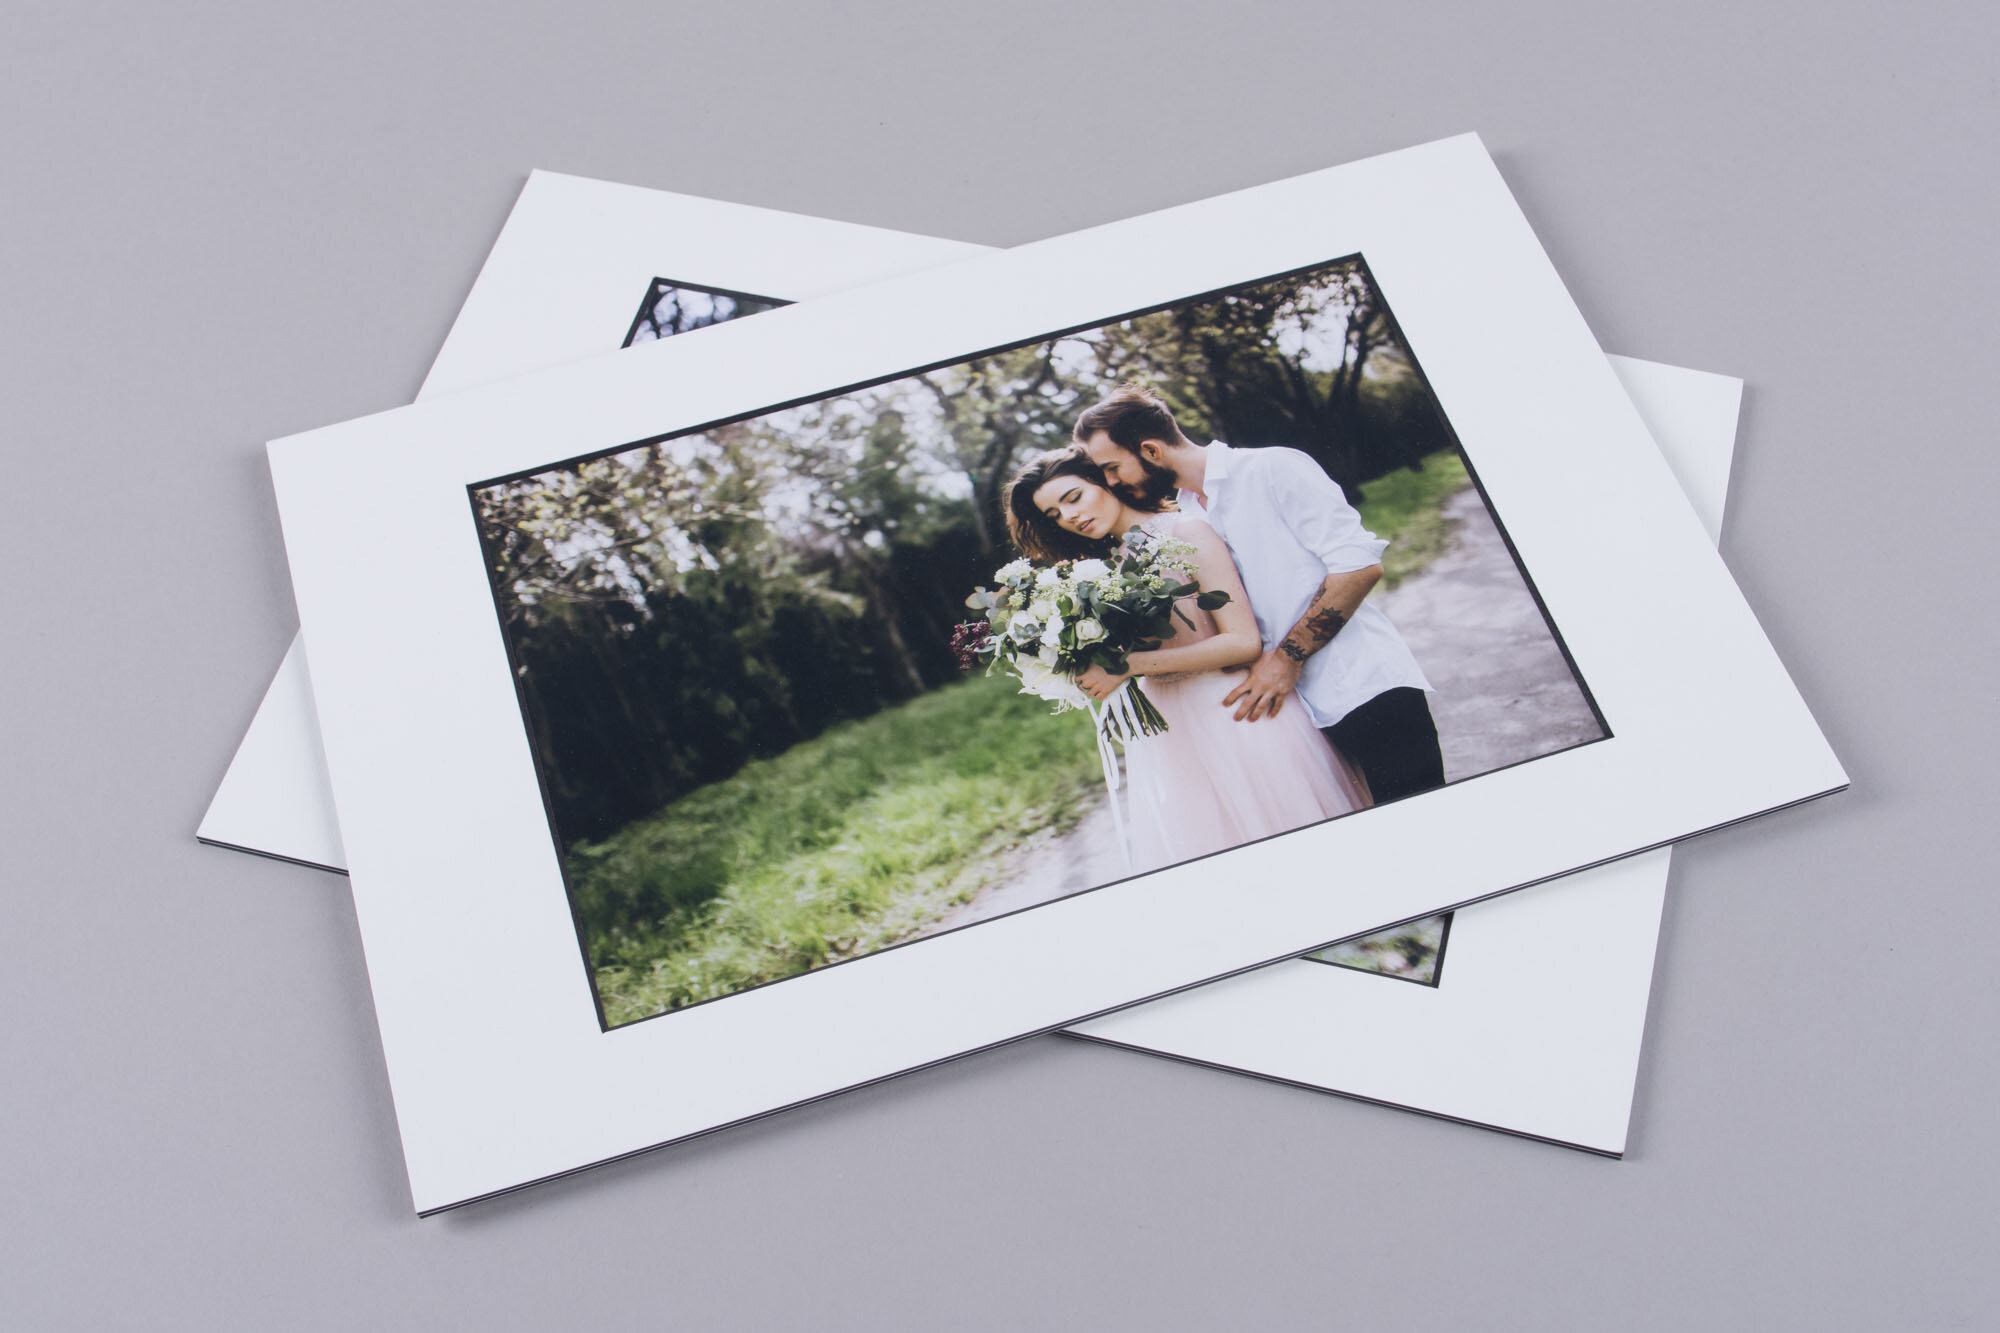 passepartout matted print foliobox white with black core mat thick print board mounted different sizes.jpg